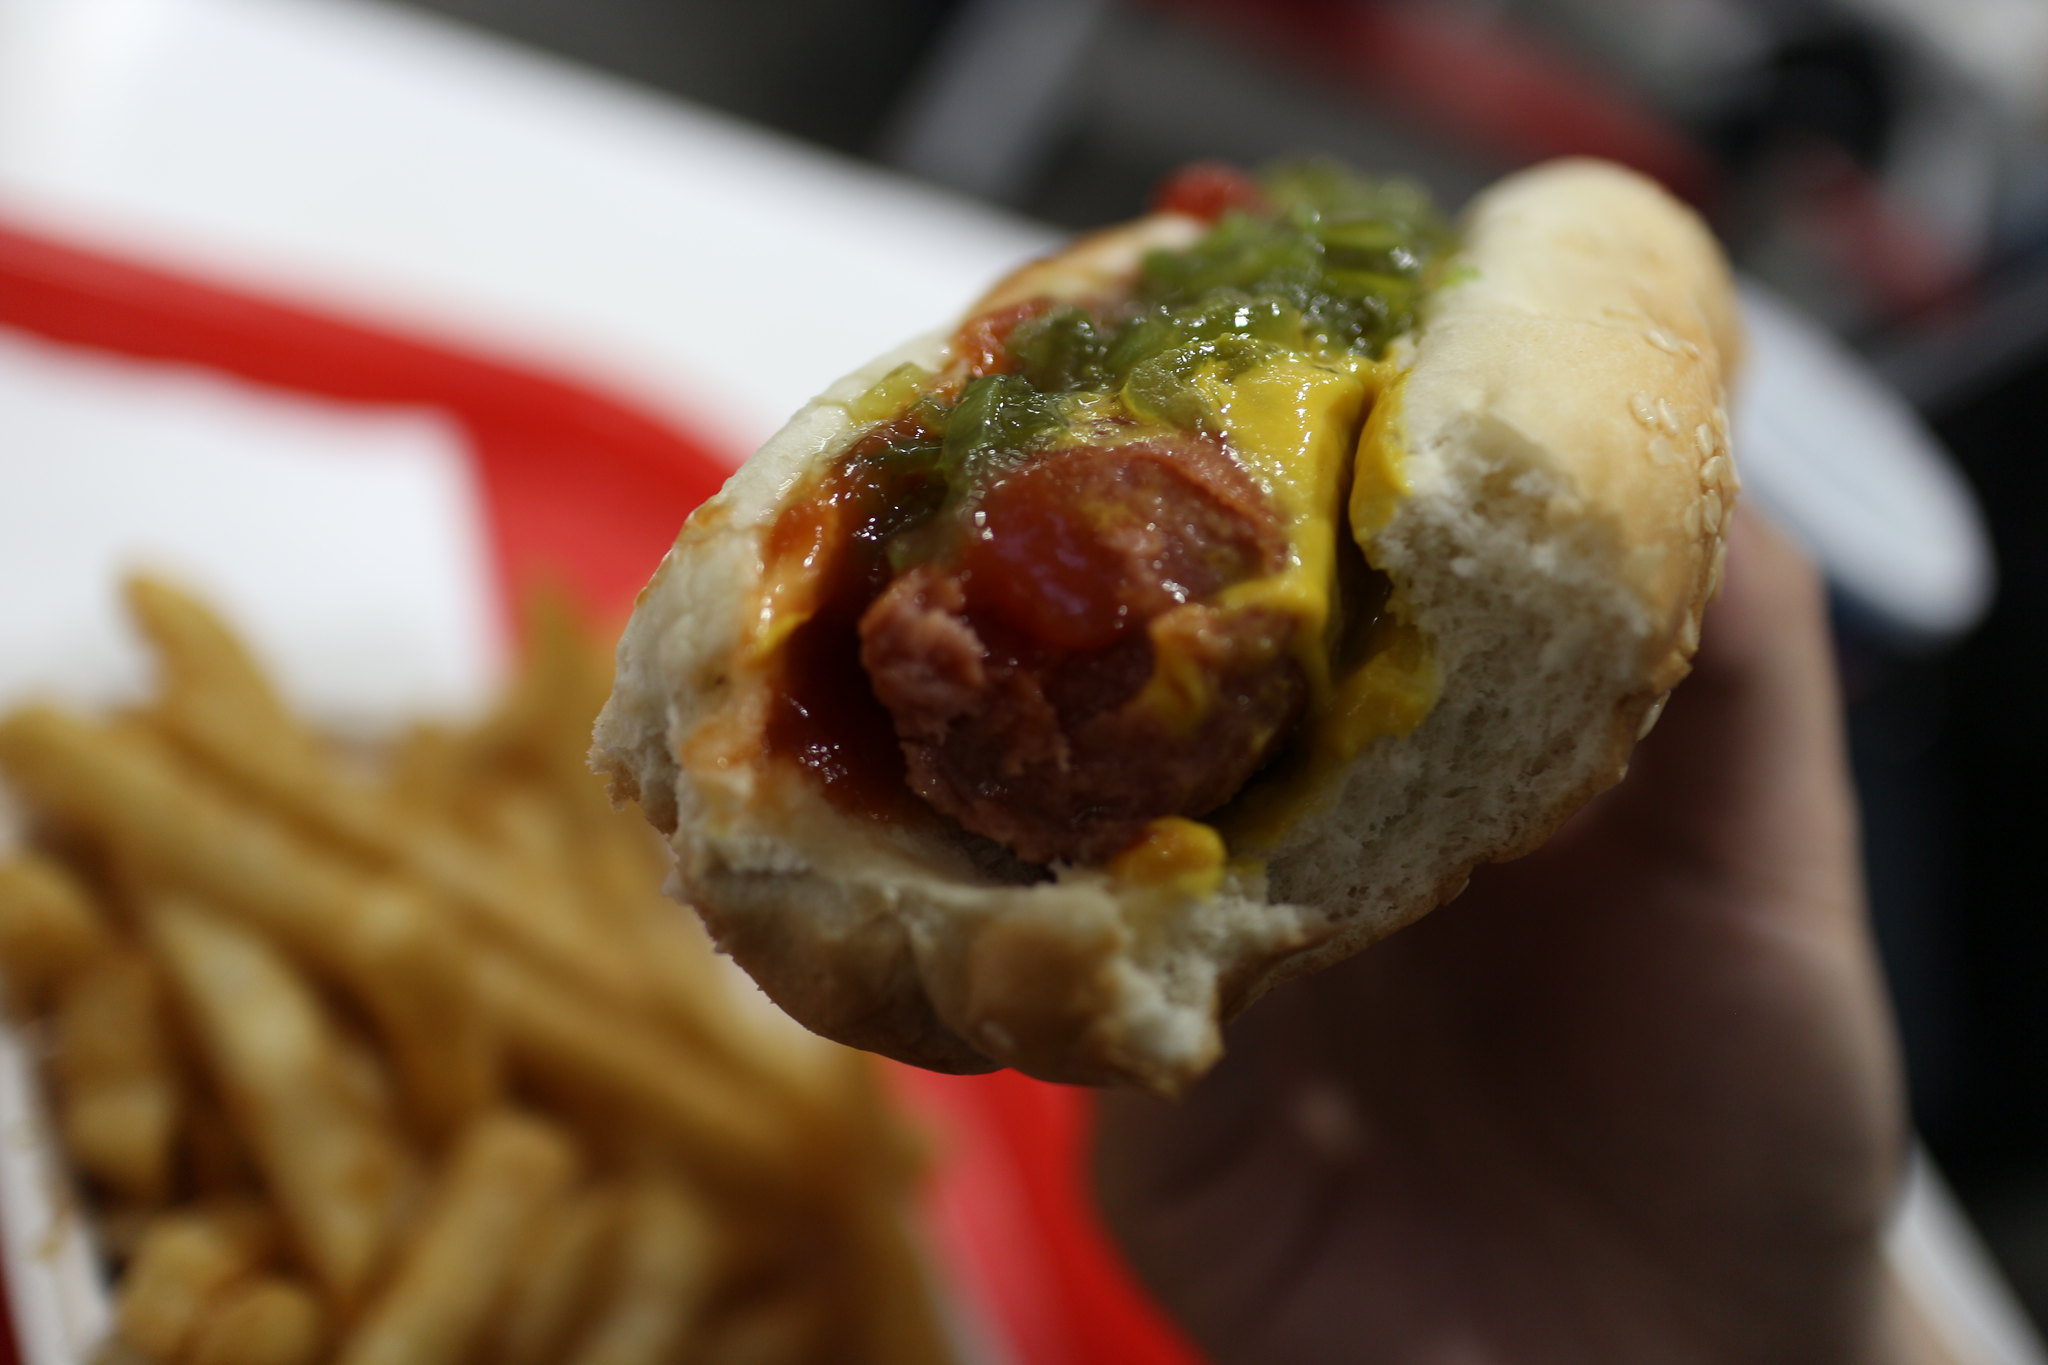 10 Costco Food Court Secrets Only Employees Know About (Part 2)